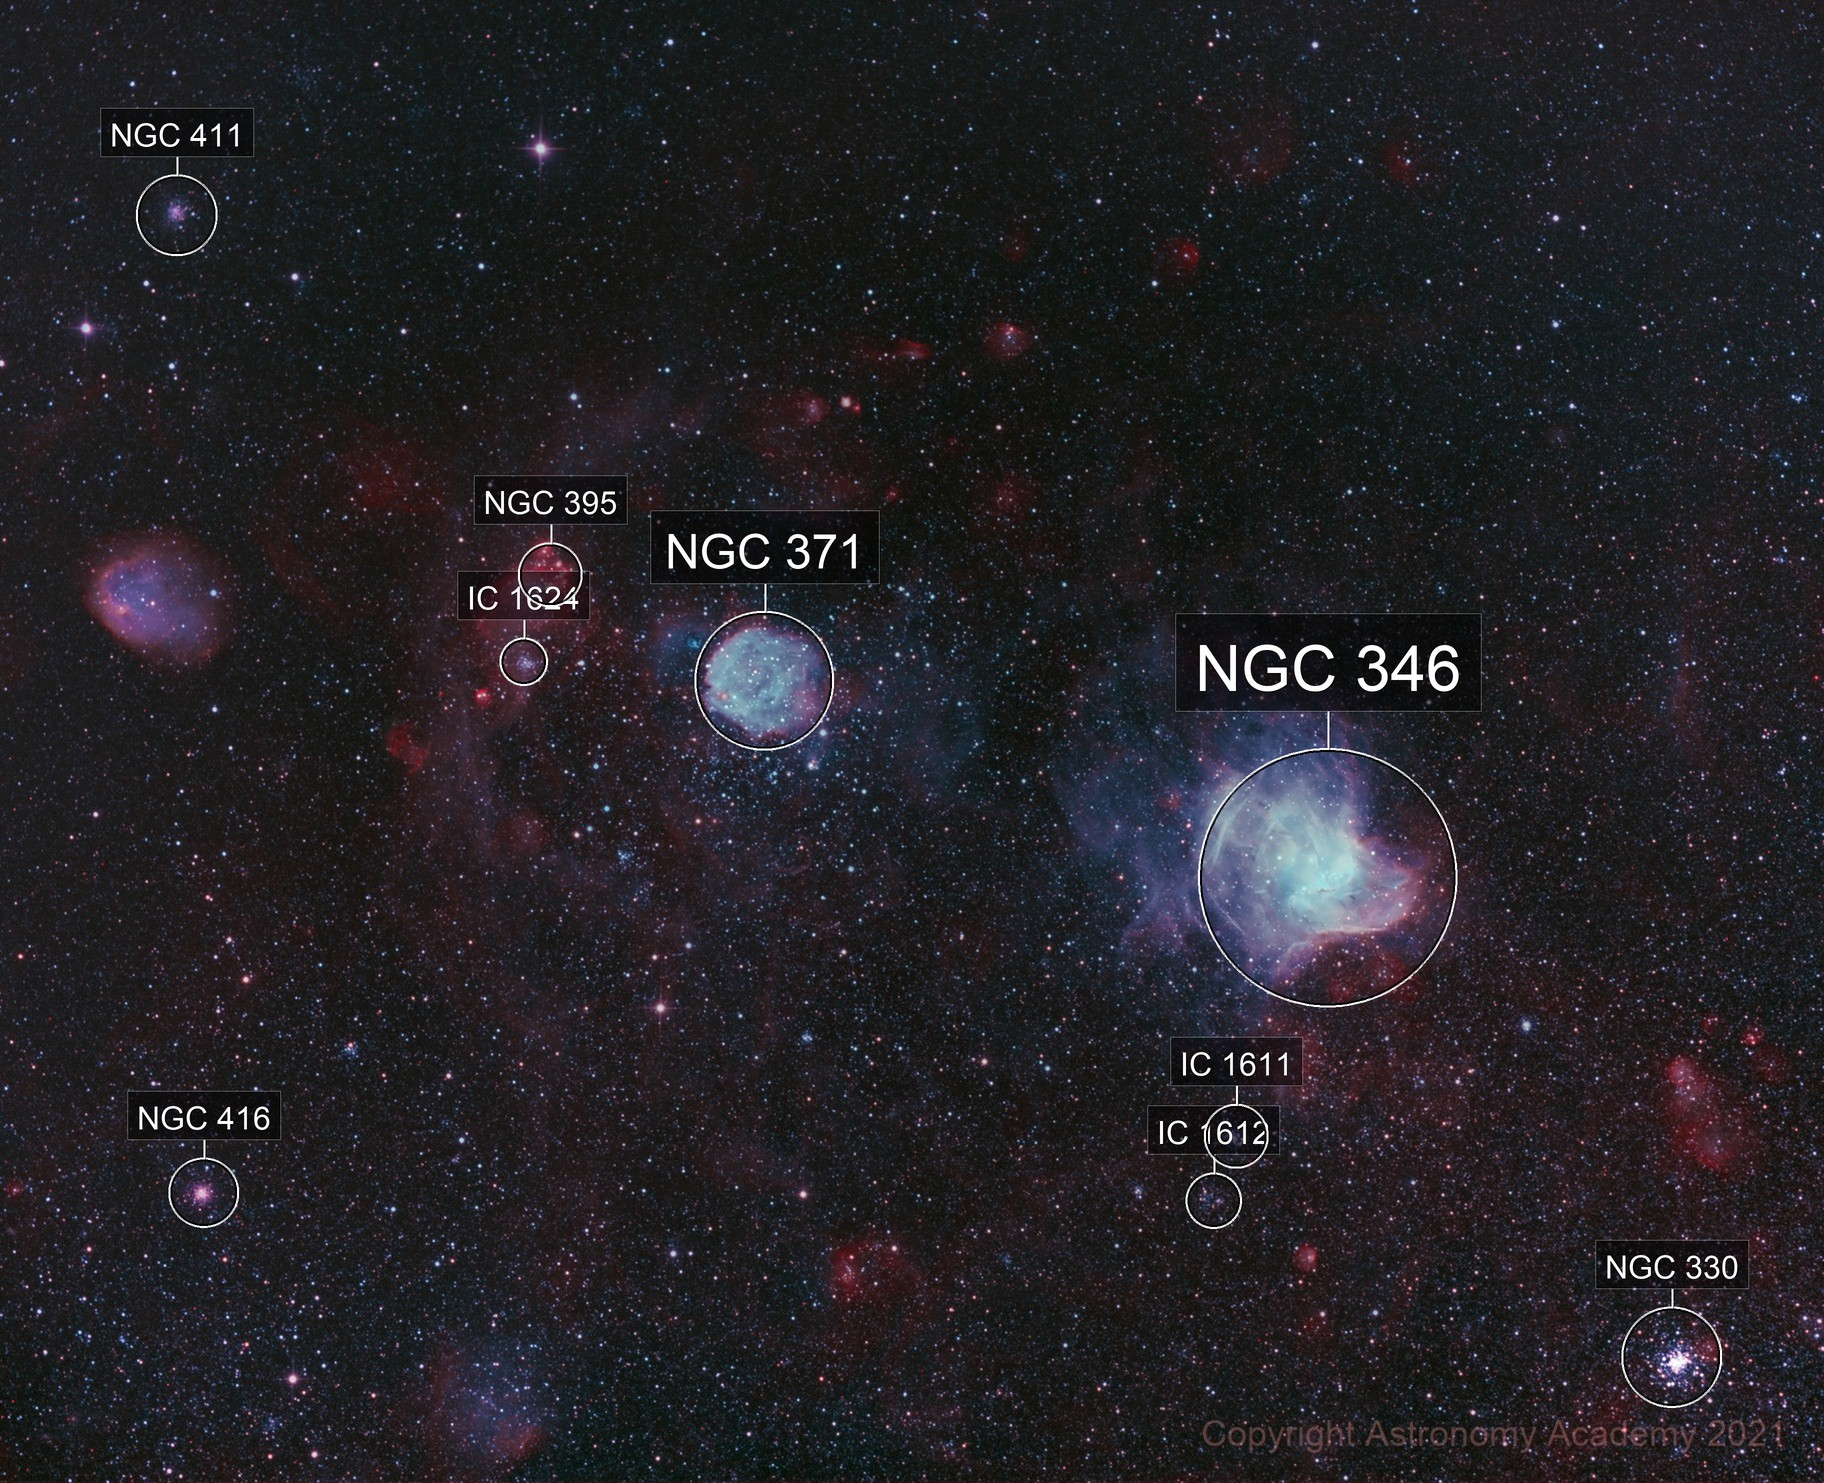 NGC 346 - Secret Garden of Gas and Dust